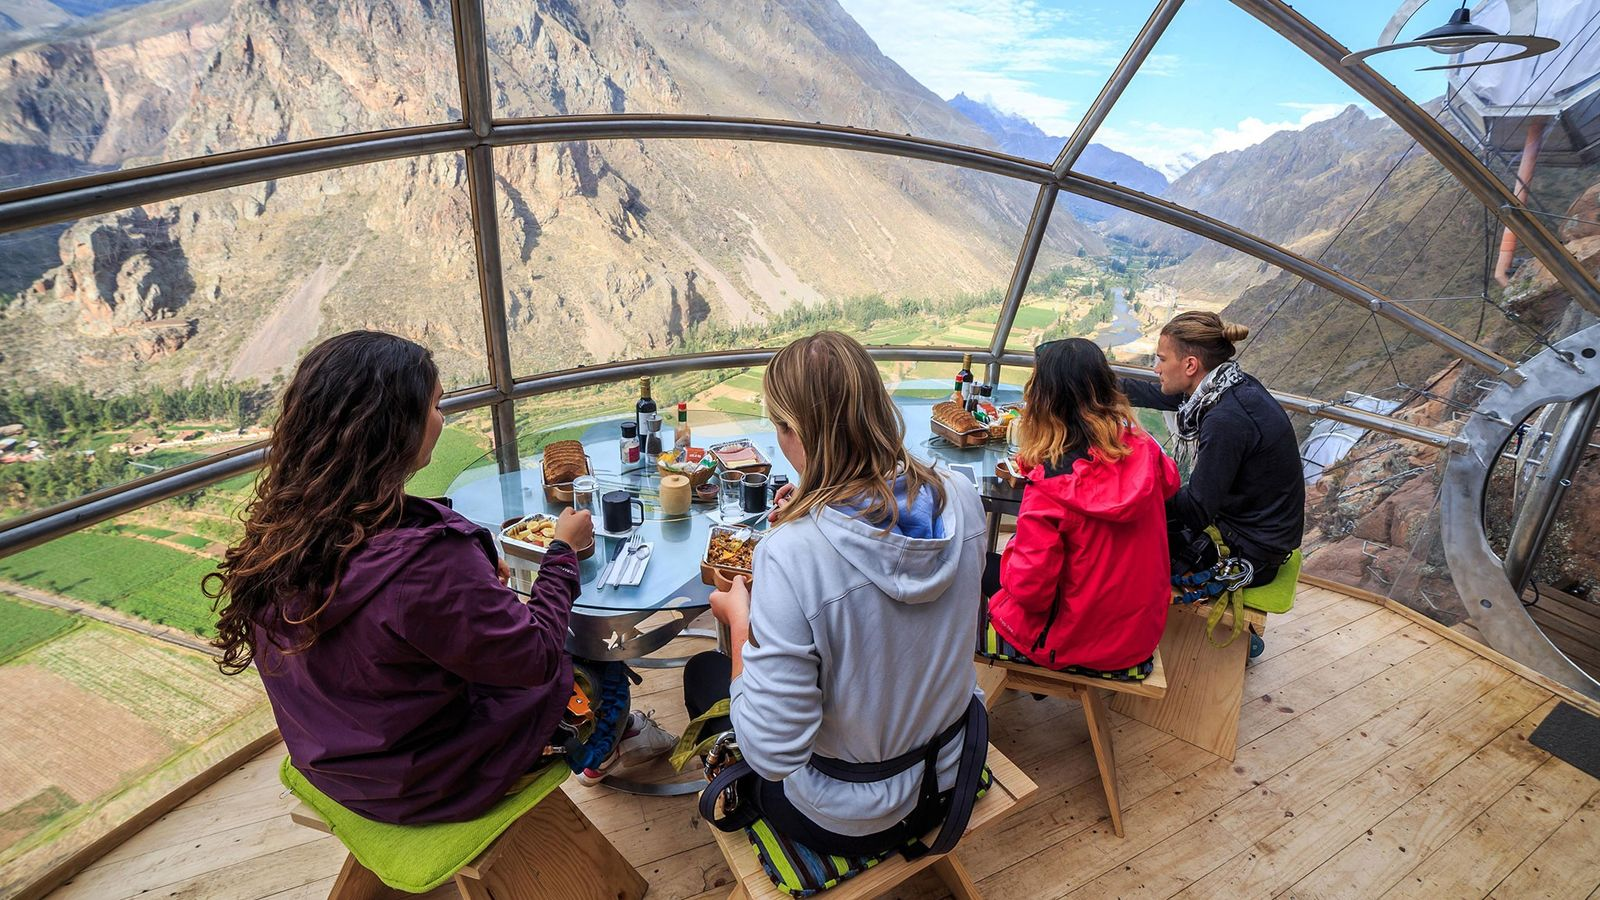 Skylodge Adventure Suites in Peru isn't for those scared of heights. Challenge yourself and embrace the ...